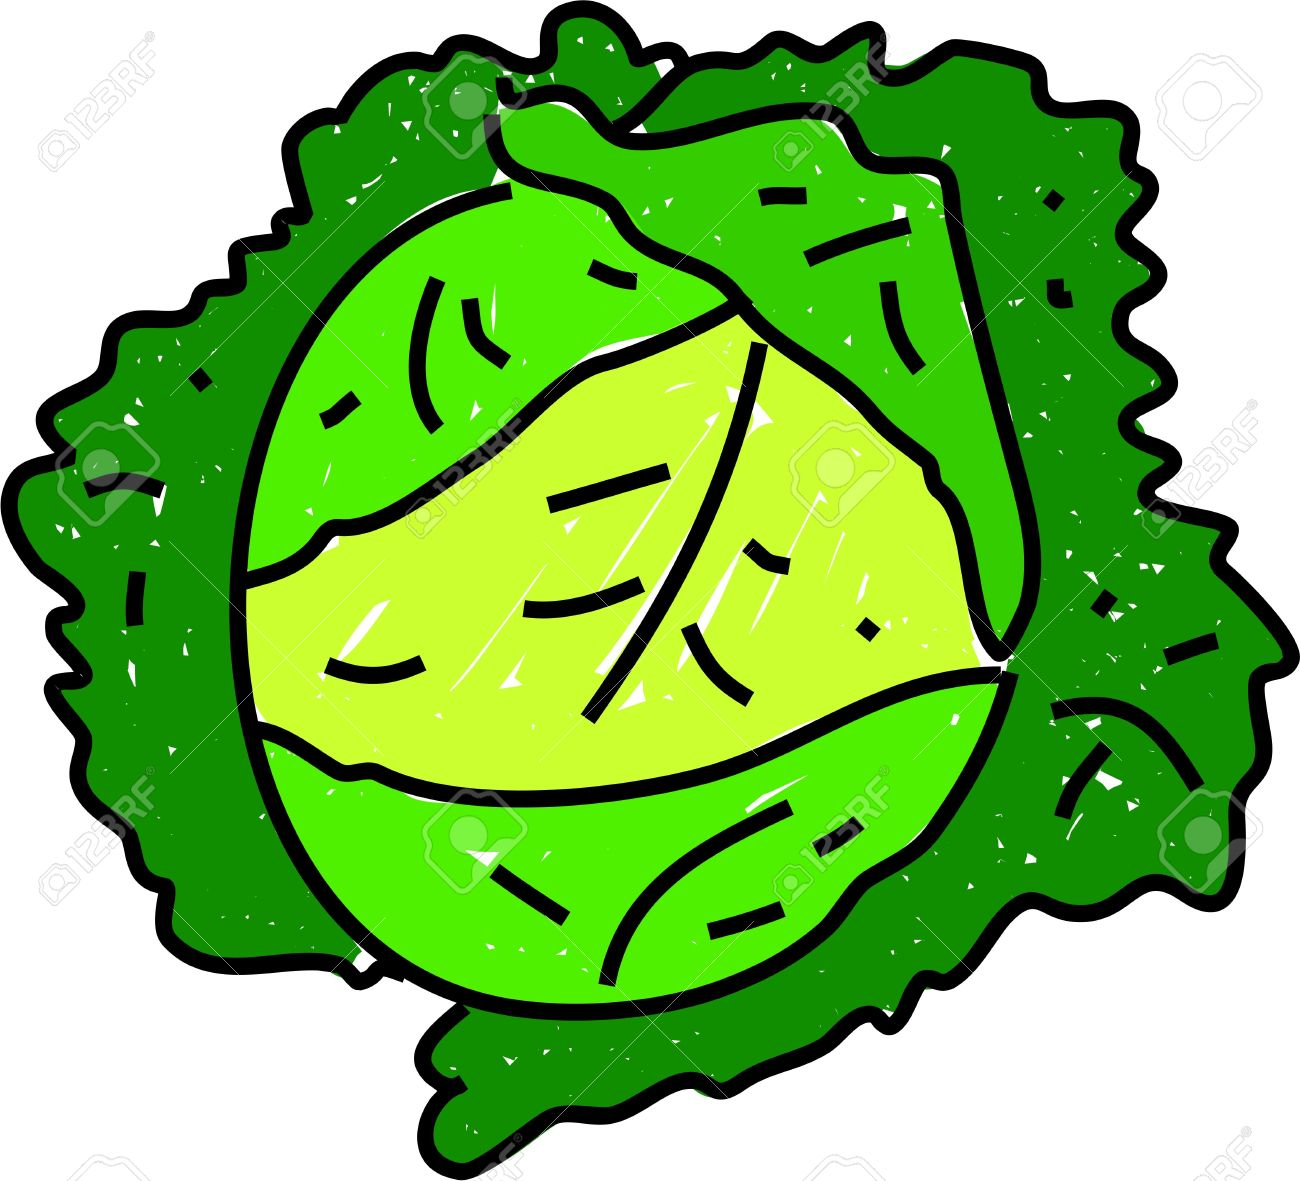 Savoy Green Leafy Cabbage Isolated On White Drawn In Toddler.